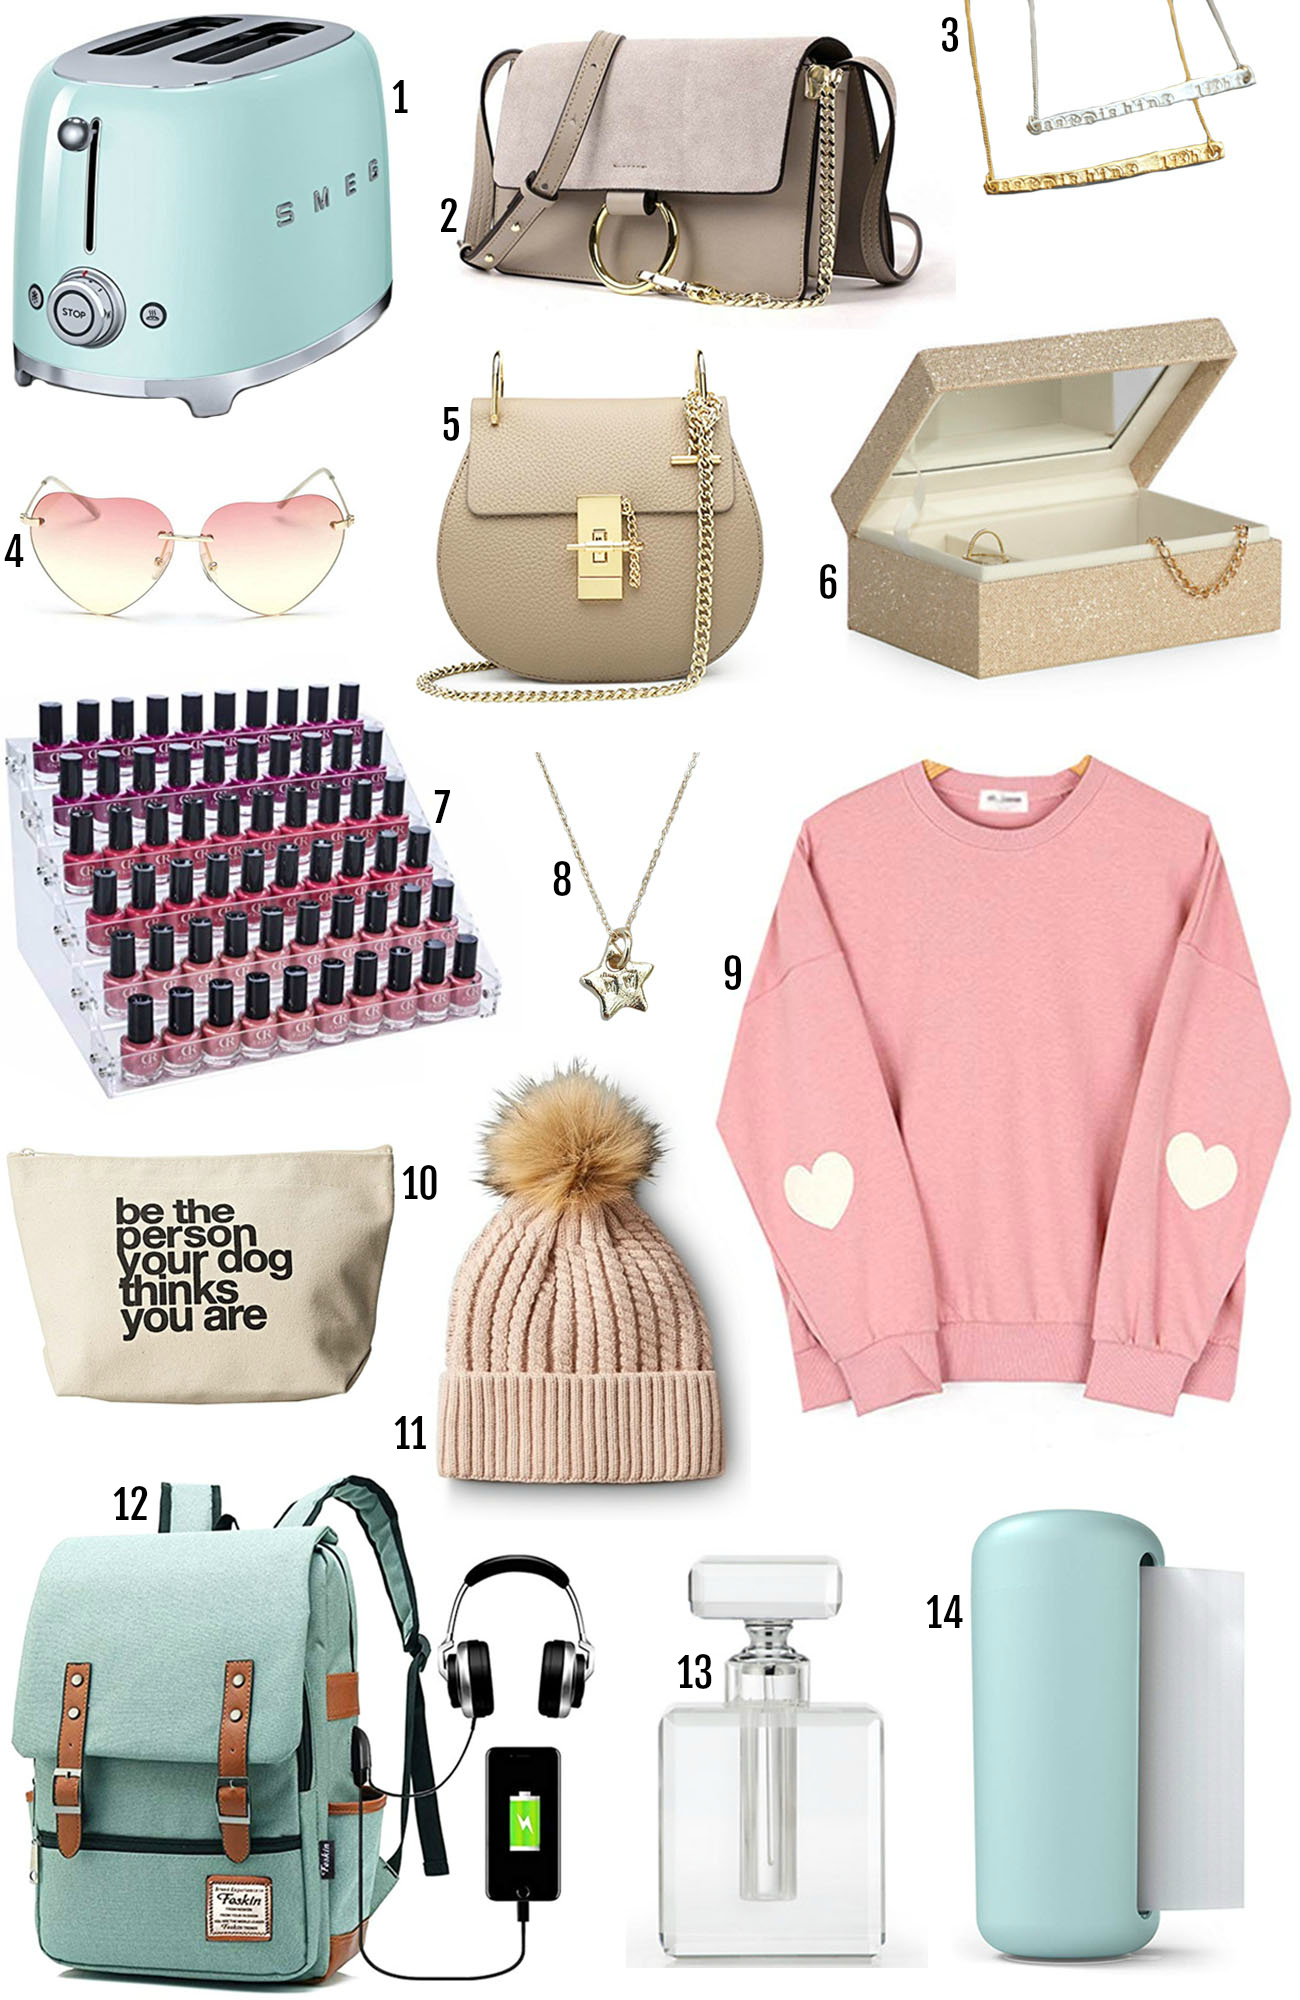 Mash Elle beauty blogger gifts | gift ideas | last minute Christmas gifts | jewelry box | coat | iphone case | necklace